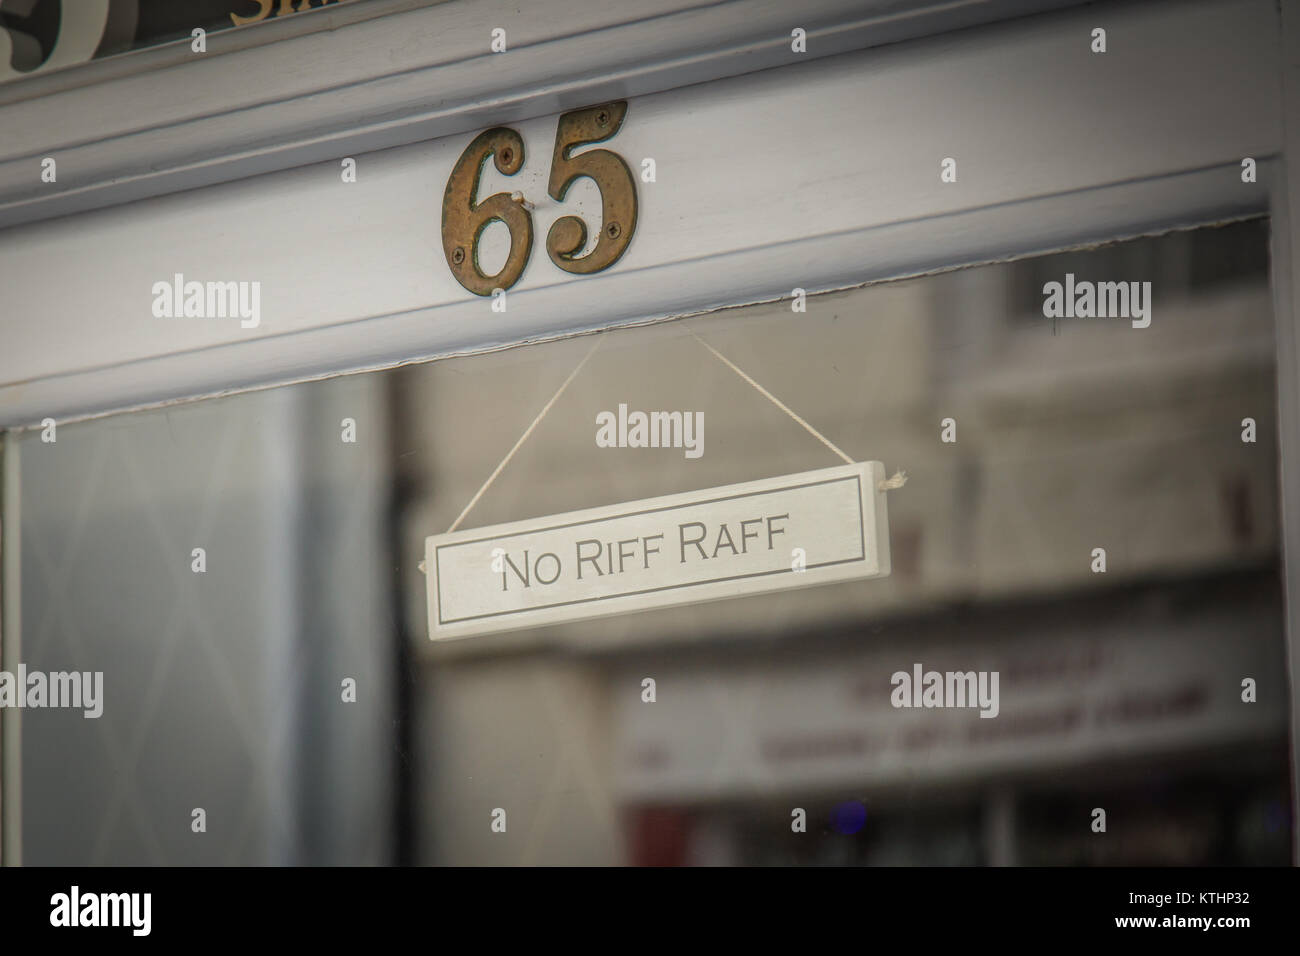 An unusual sign in a shop doorway,requesting 'No Riff-Raff'....in other words no one should enter who is - Stock Image